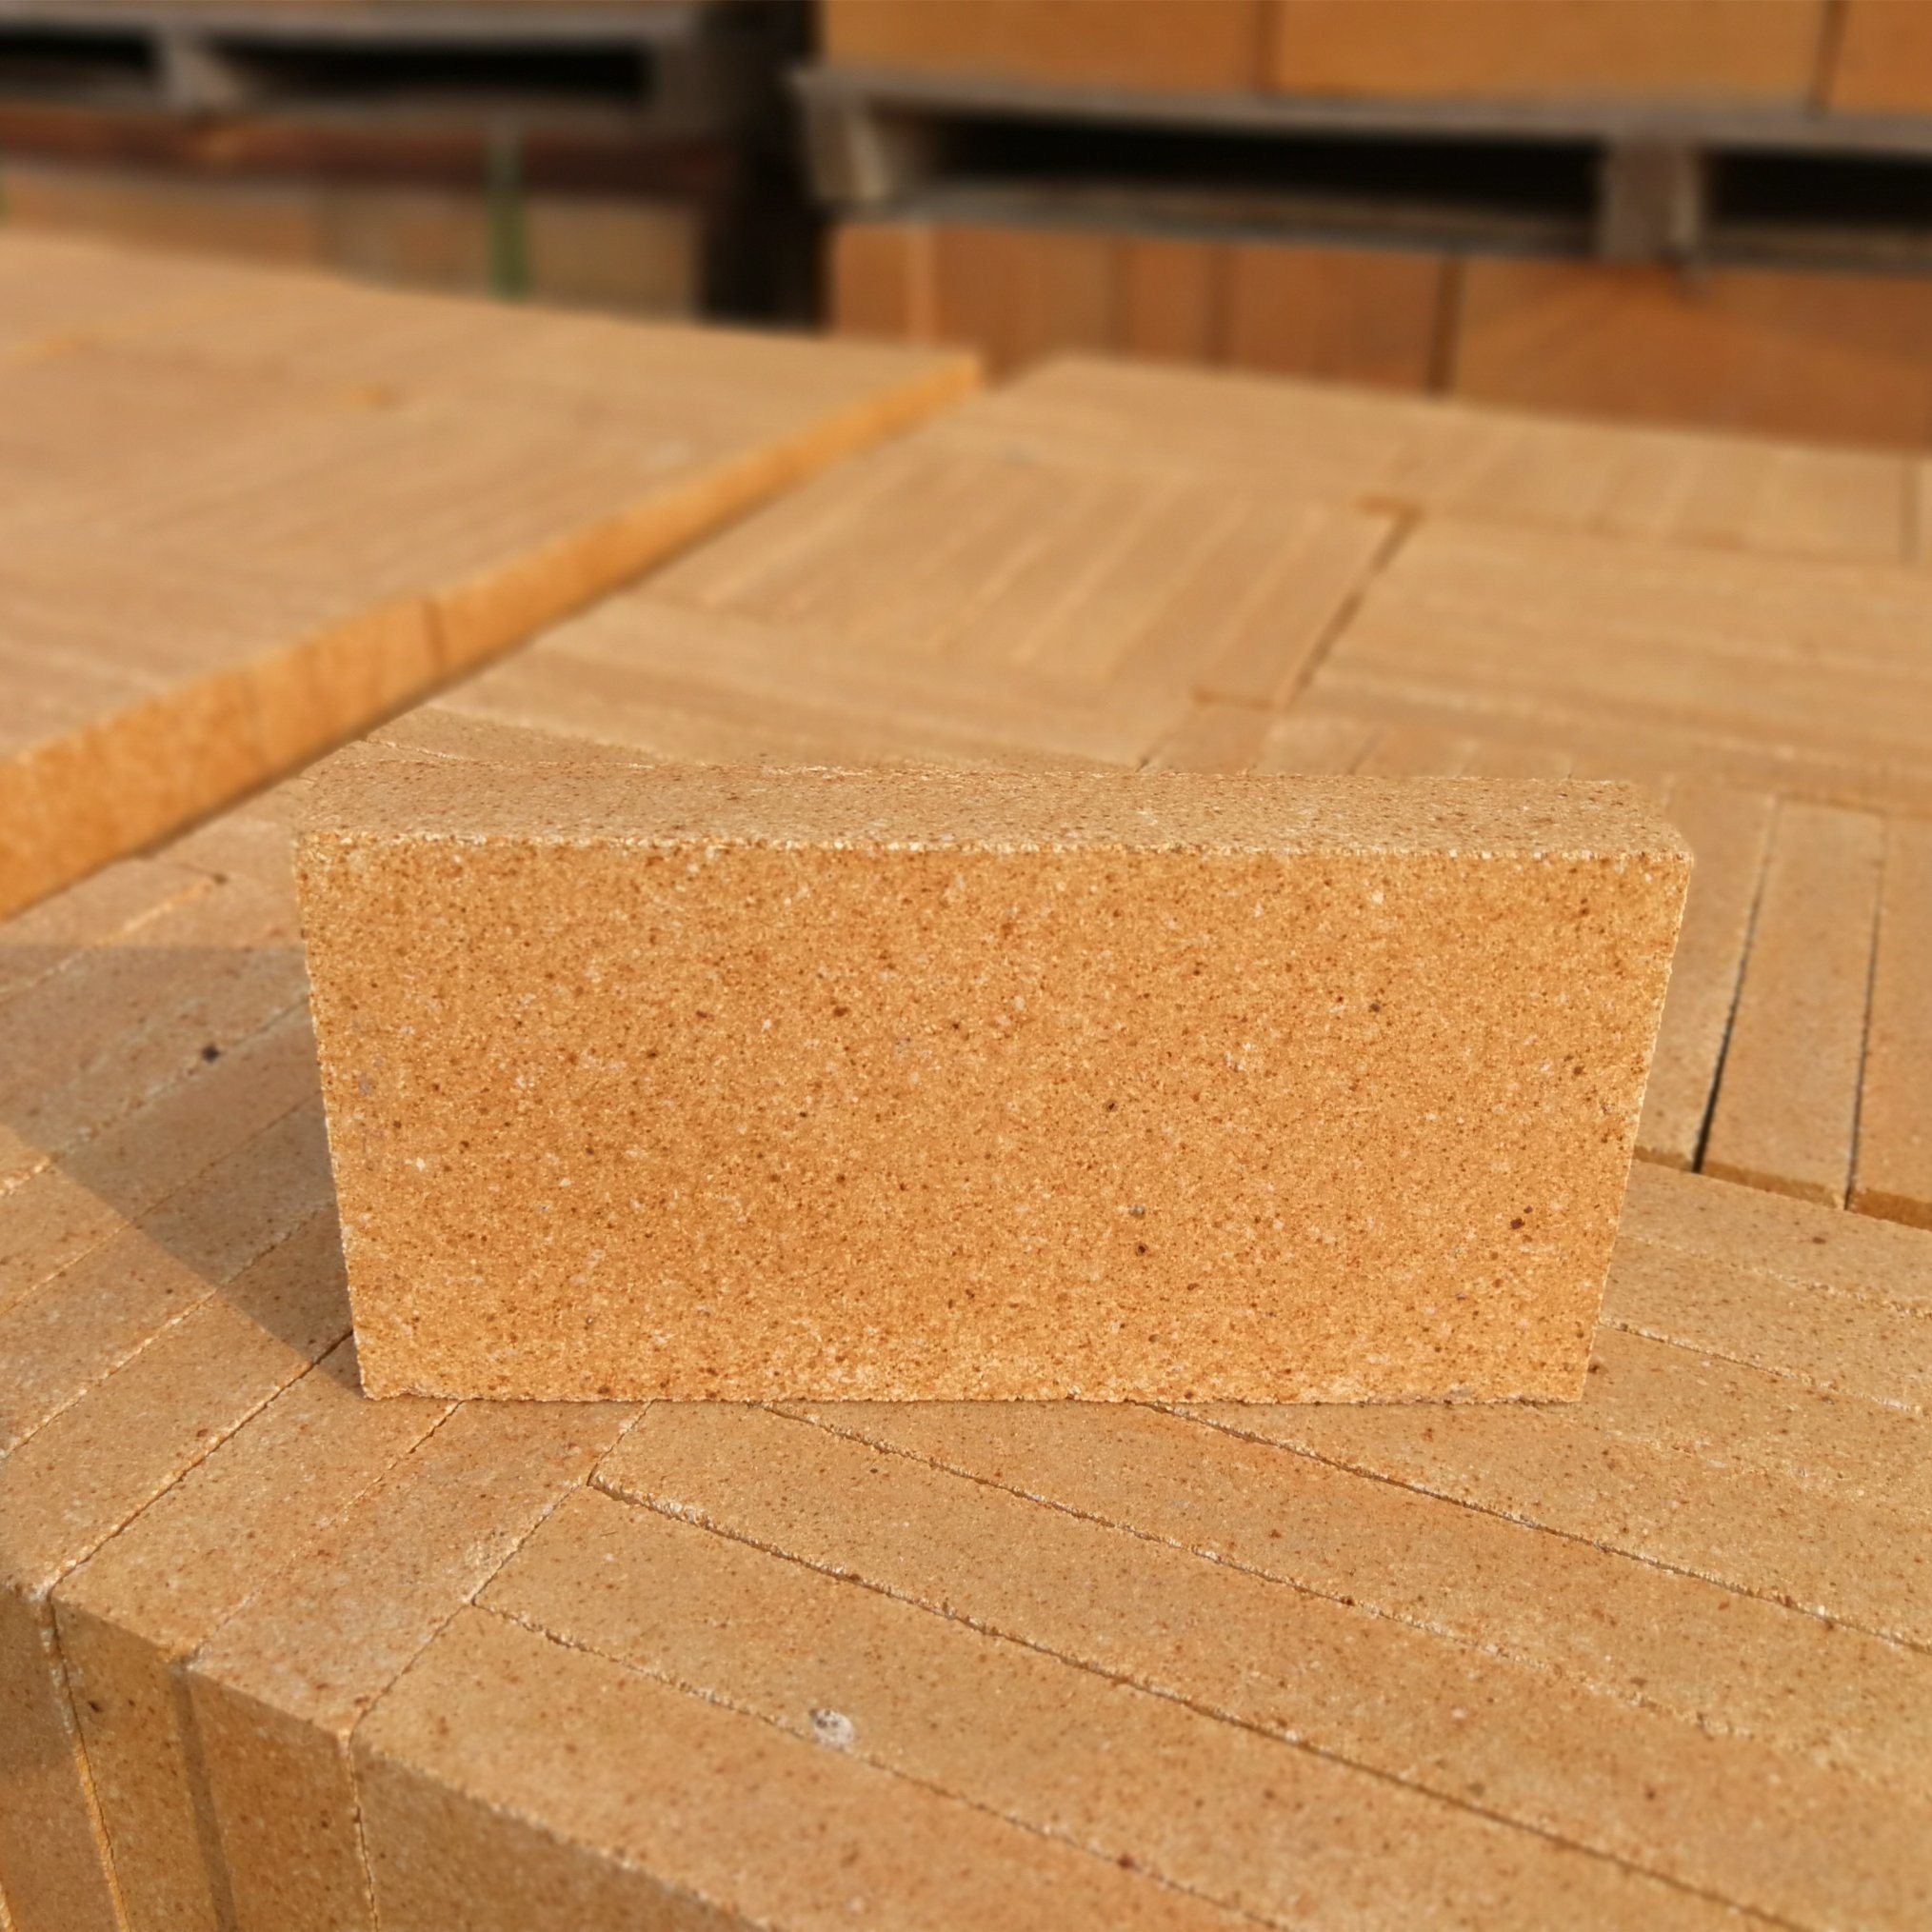 Hot Item Fire Brick At Home Depot Refractory Brick For Fireplace